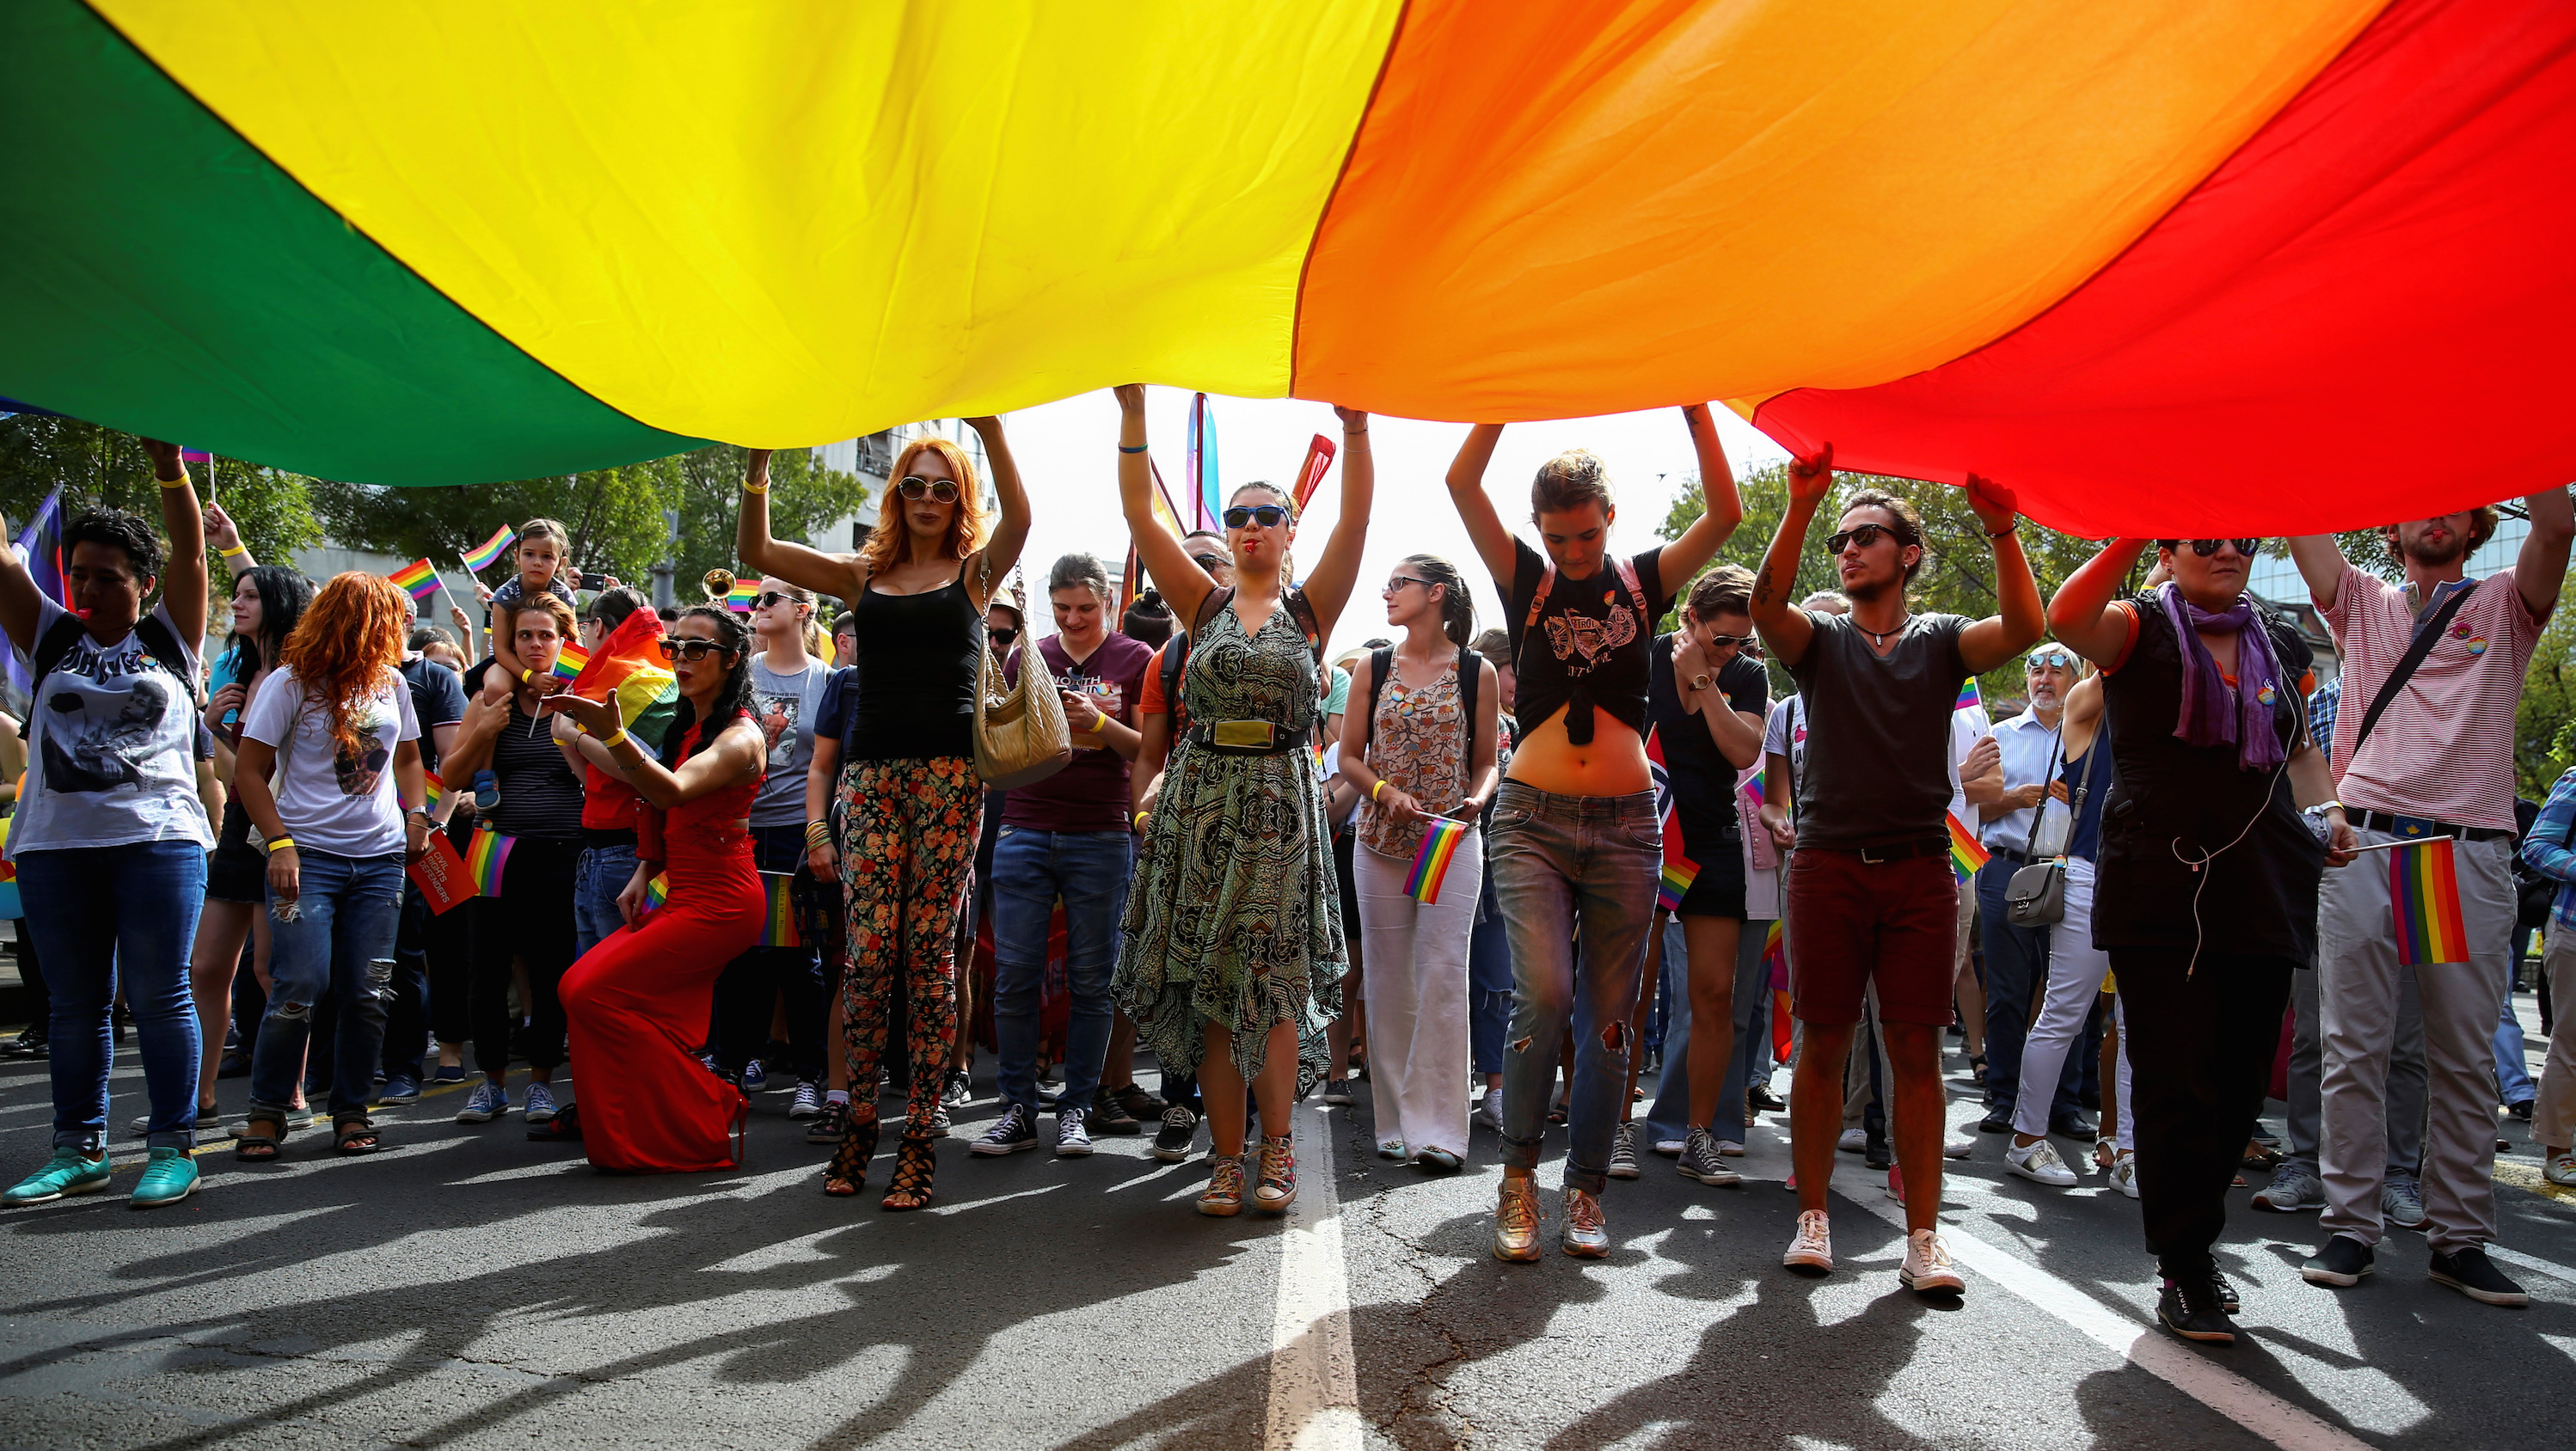 Participants hold a rainbow flag during an annual LGBT (Lesbian, Gay, Bisexual and Transgender) pride parade in Belgrade, Serbia September 18, 2016.